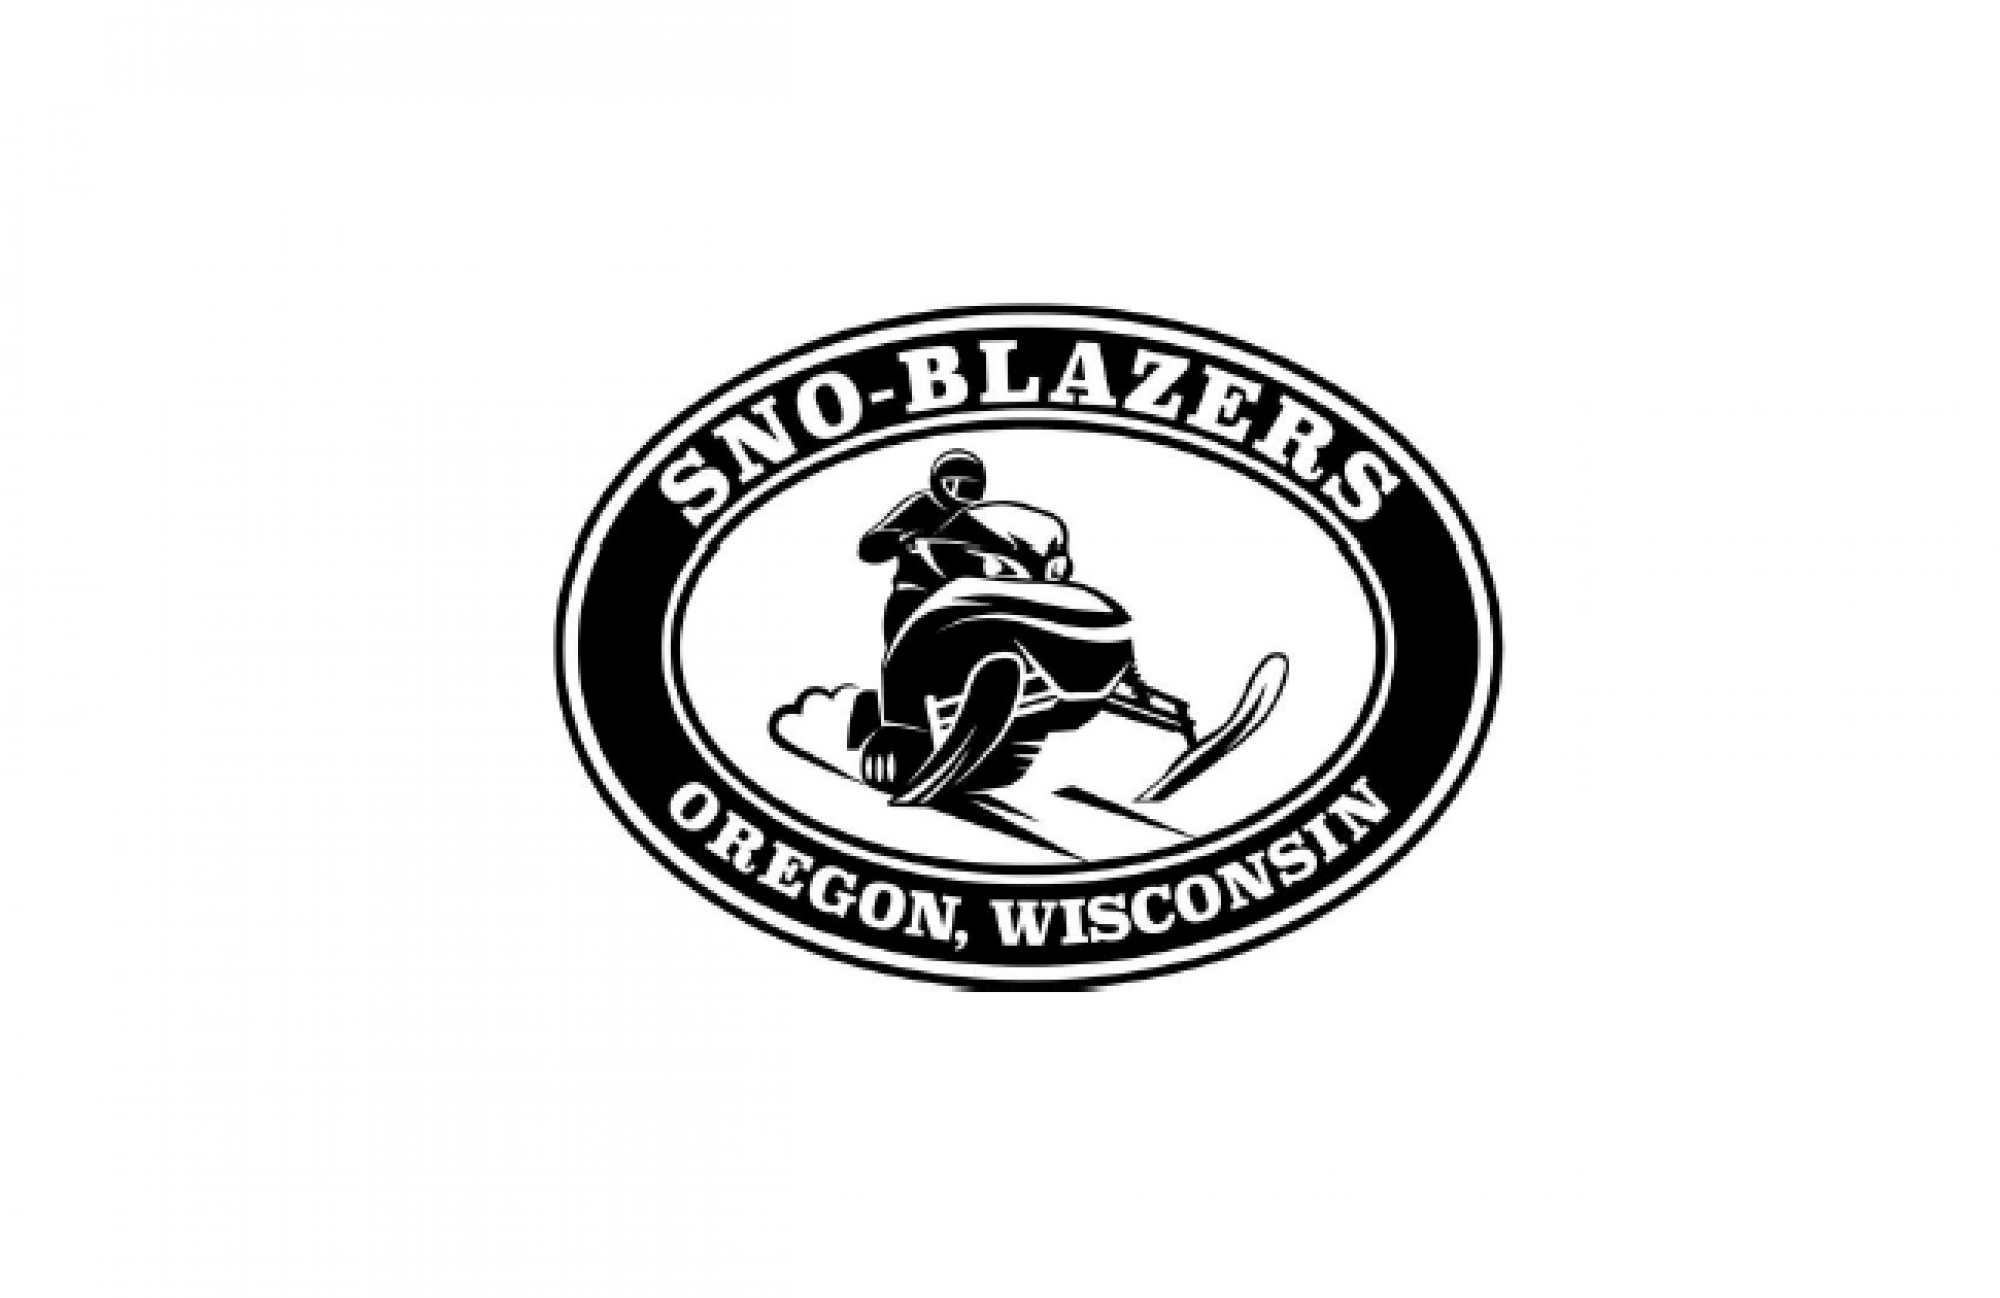 Oregon Sno Blazers